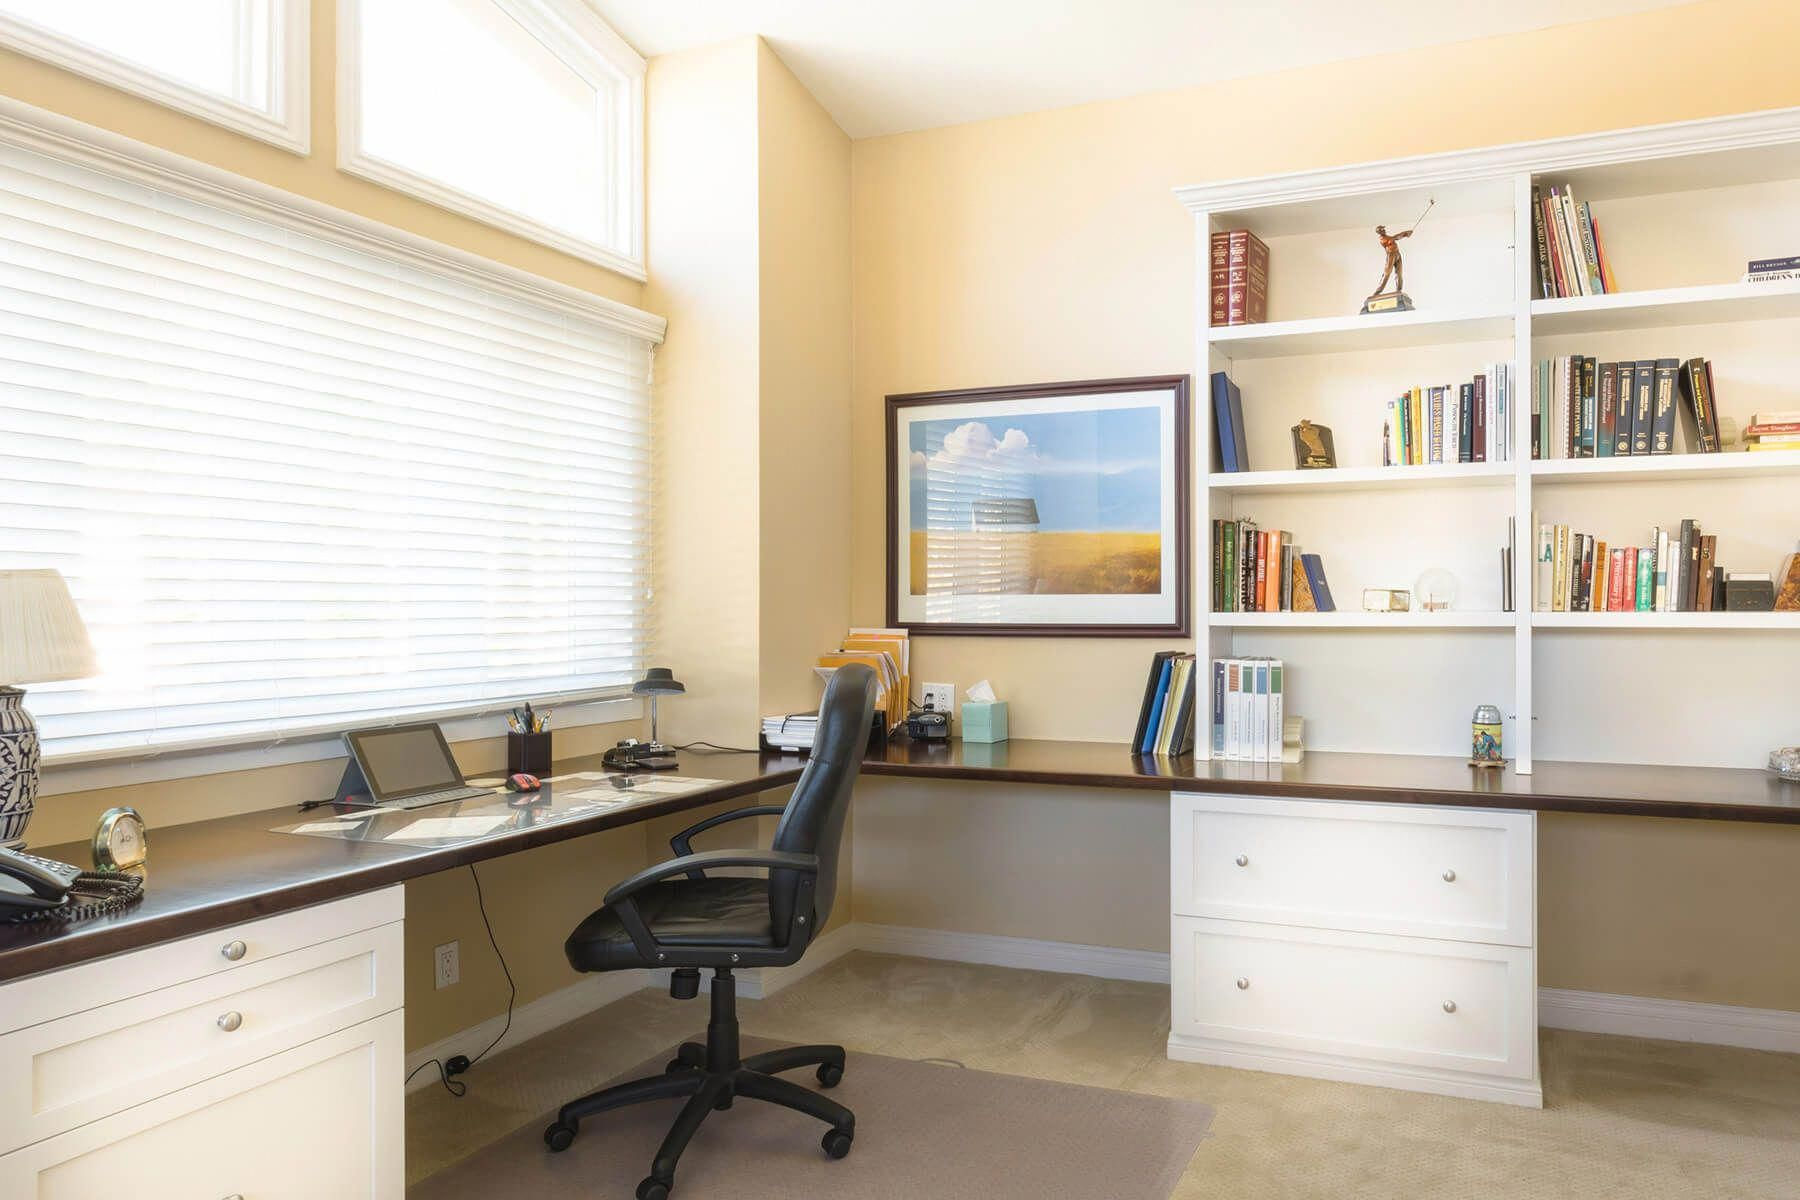 Spacious Home Office With Large L Shaped Built In Desk Homeofficefurnitureikeaworkspaces Office Furniture Design Home Office Design Executive Office Decor